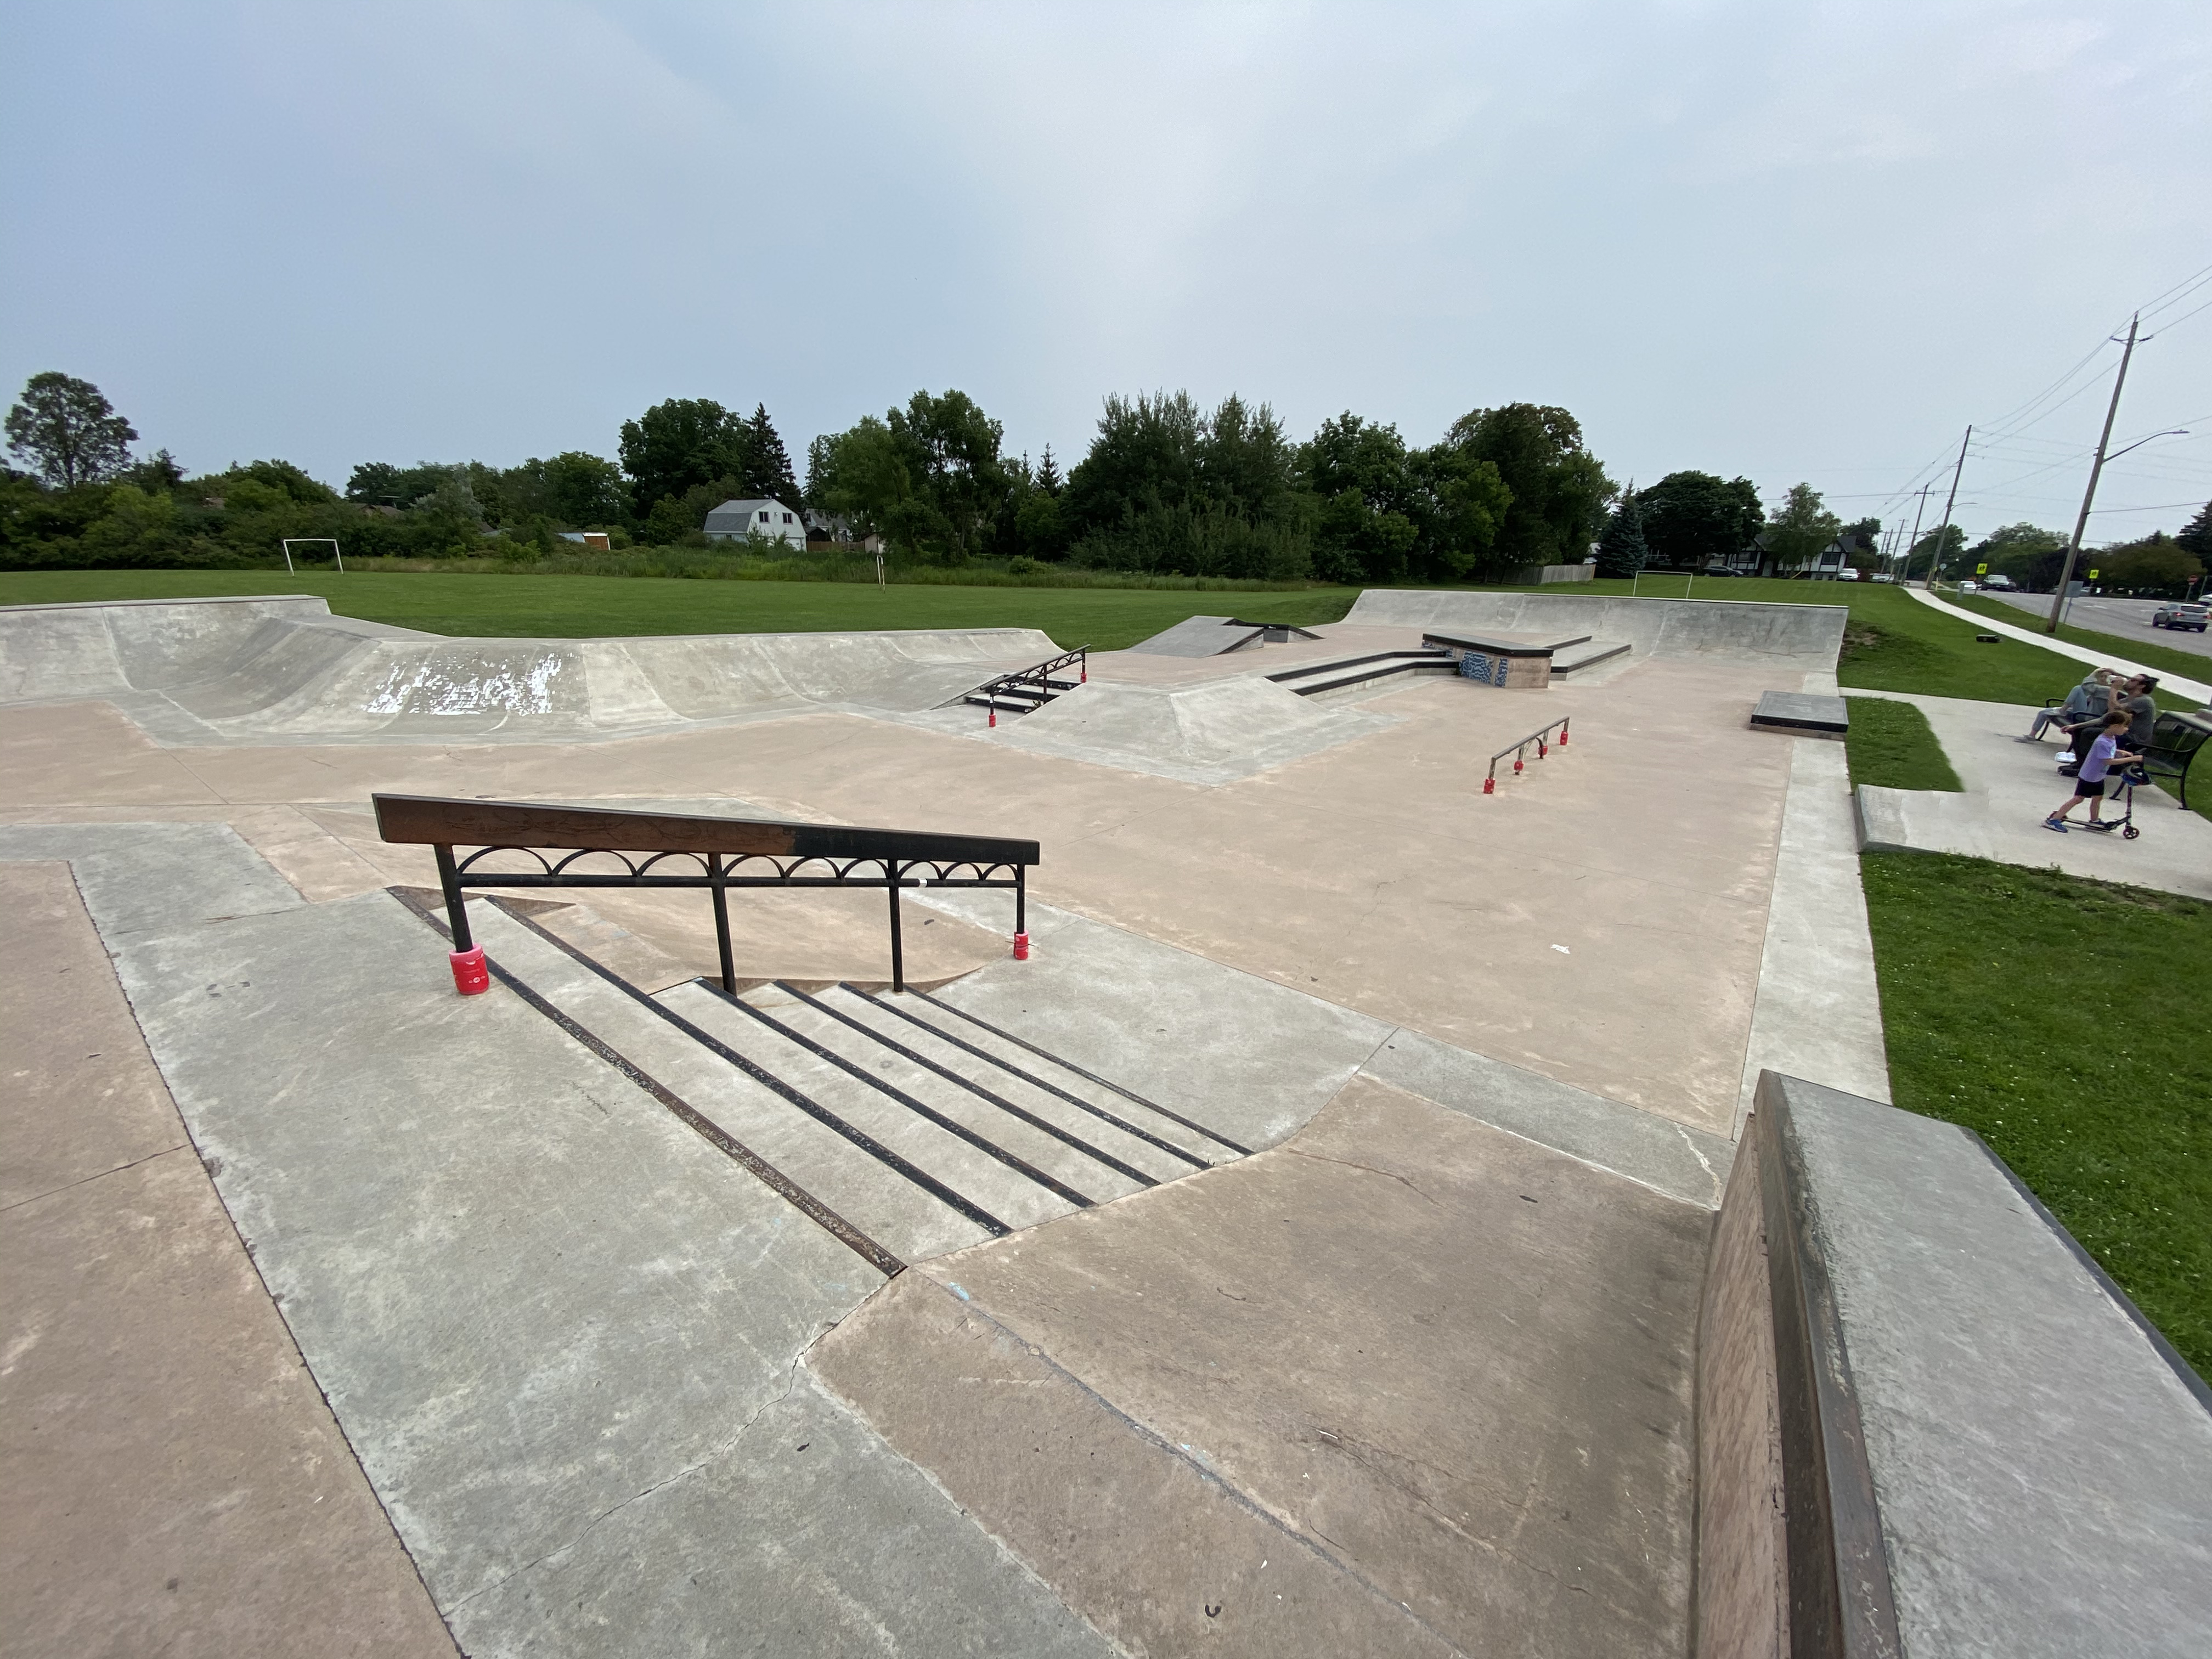 Caledonia Skatepark from the left side looking across